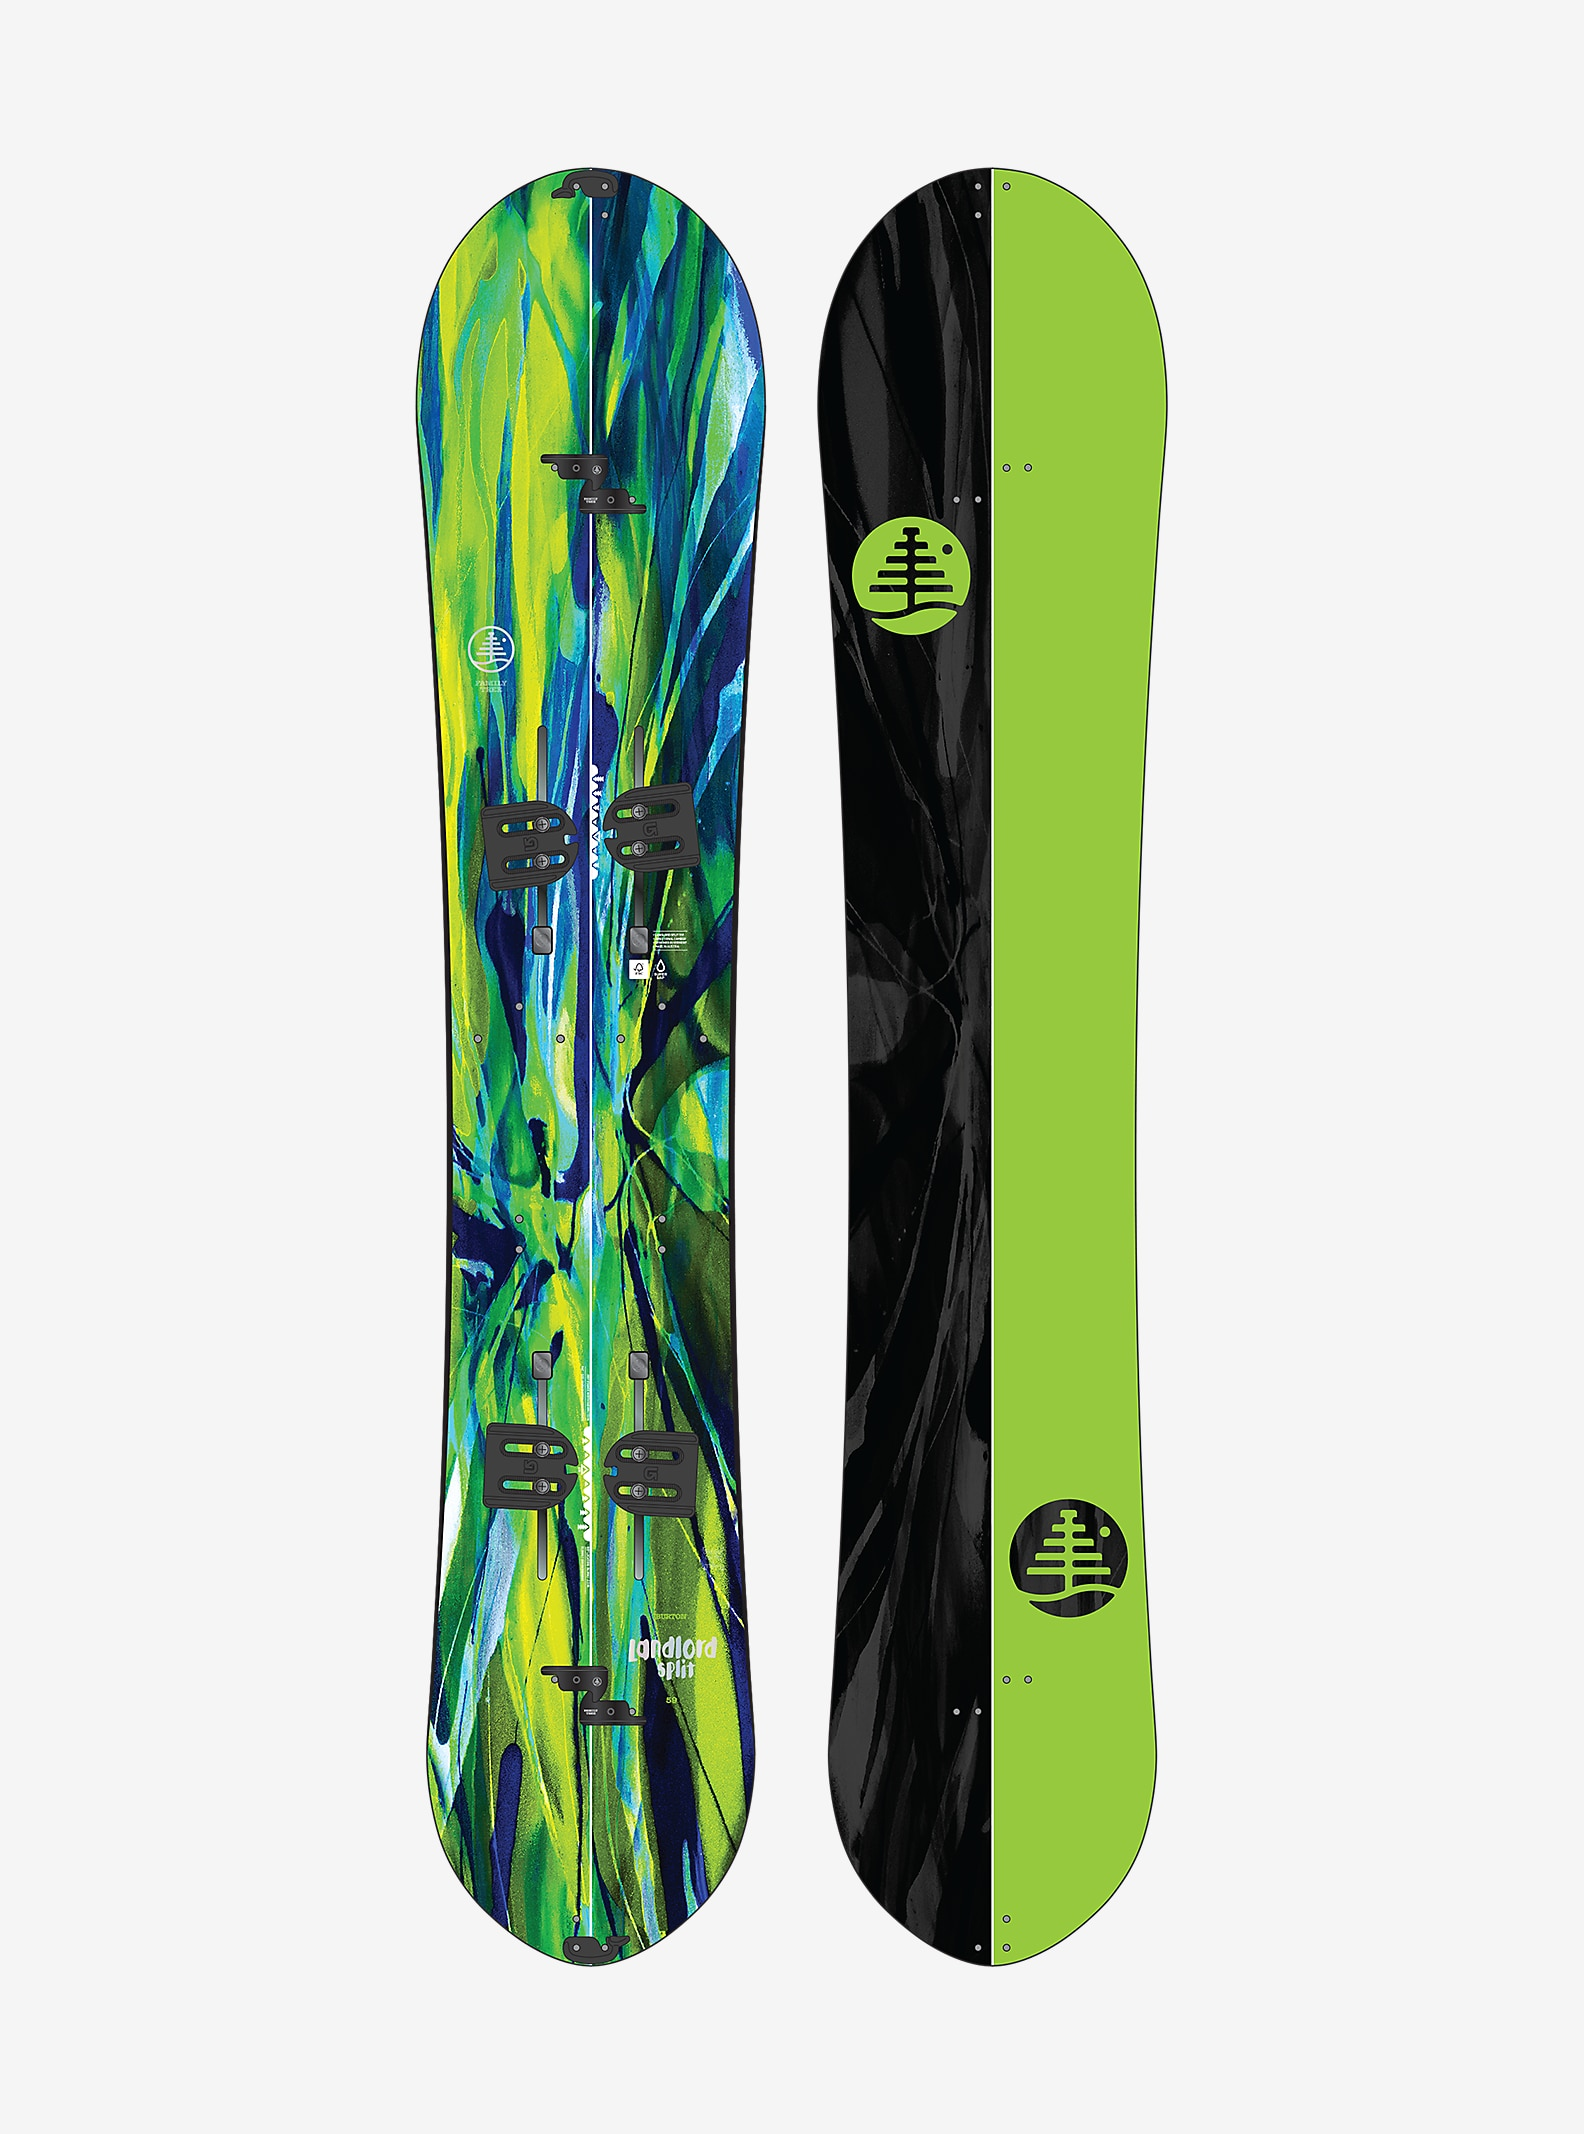 Burton Family Tree Landlord Split Snowboard shown in 159